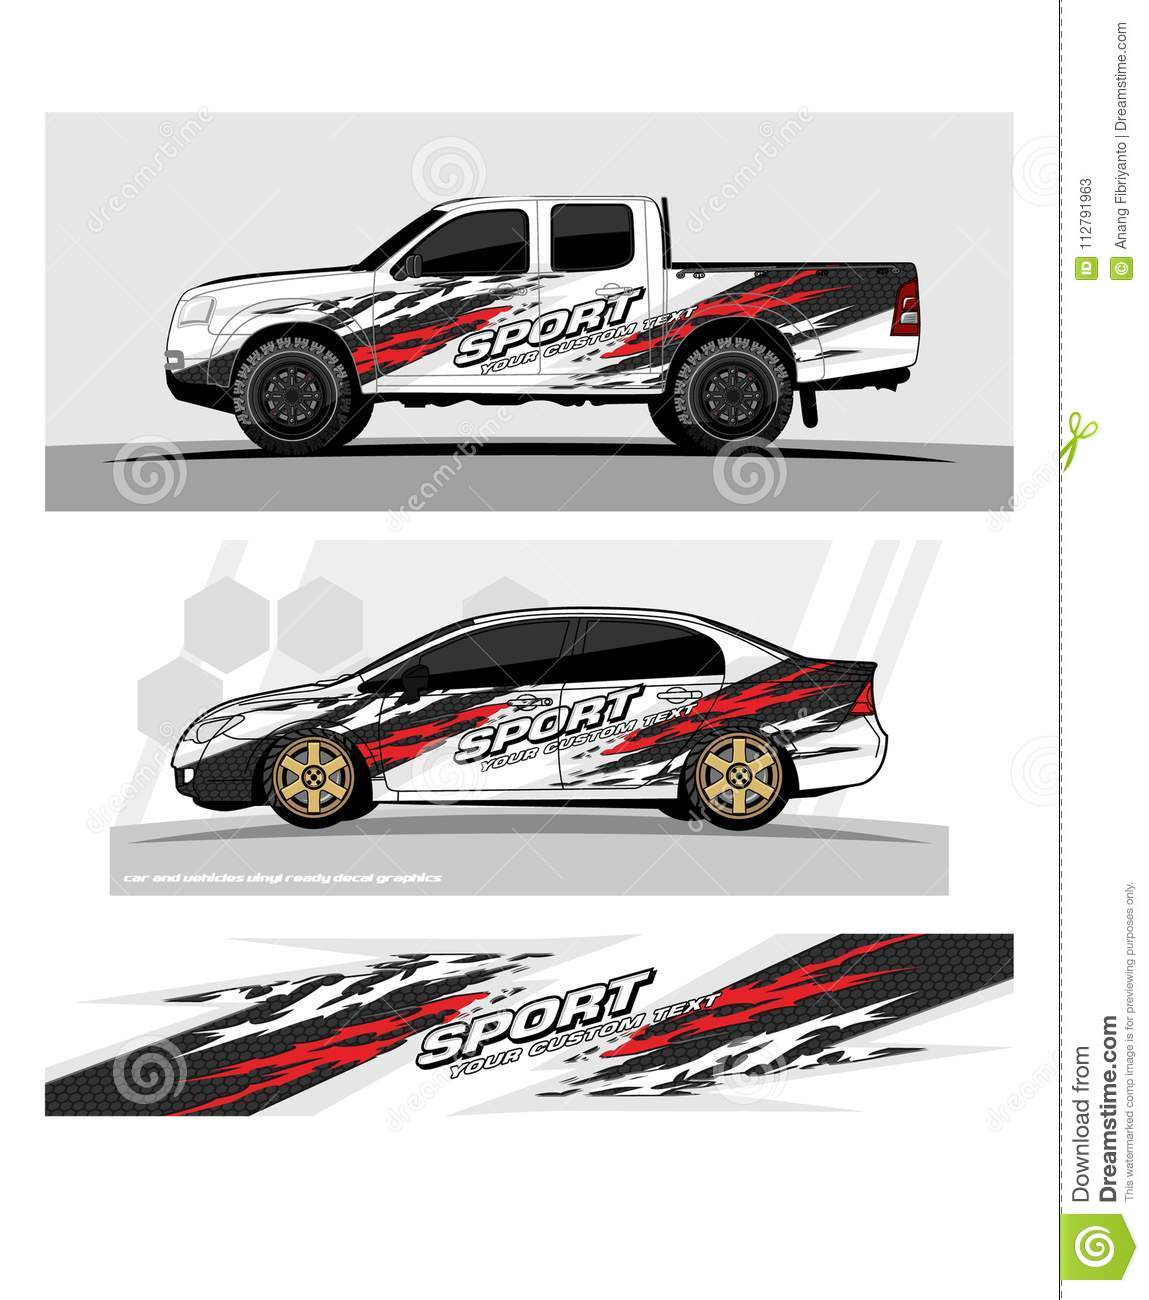 Racing background for car graphic tribal shape with grunge background design for vehicle vinyl wrap